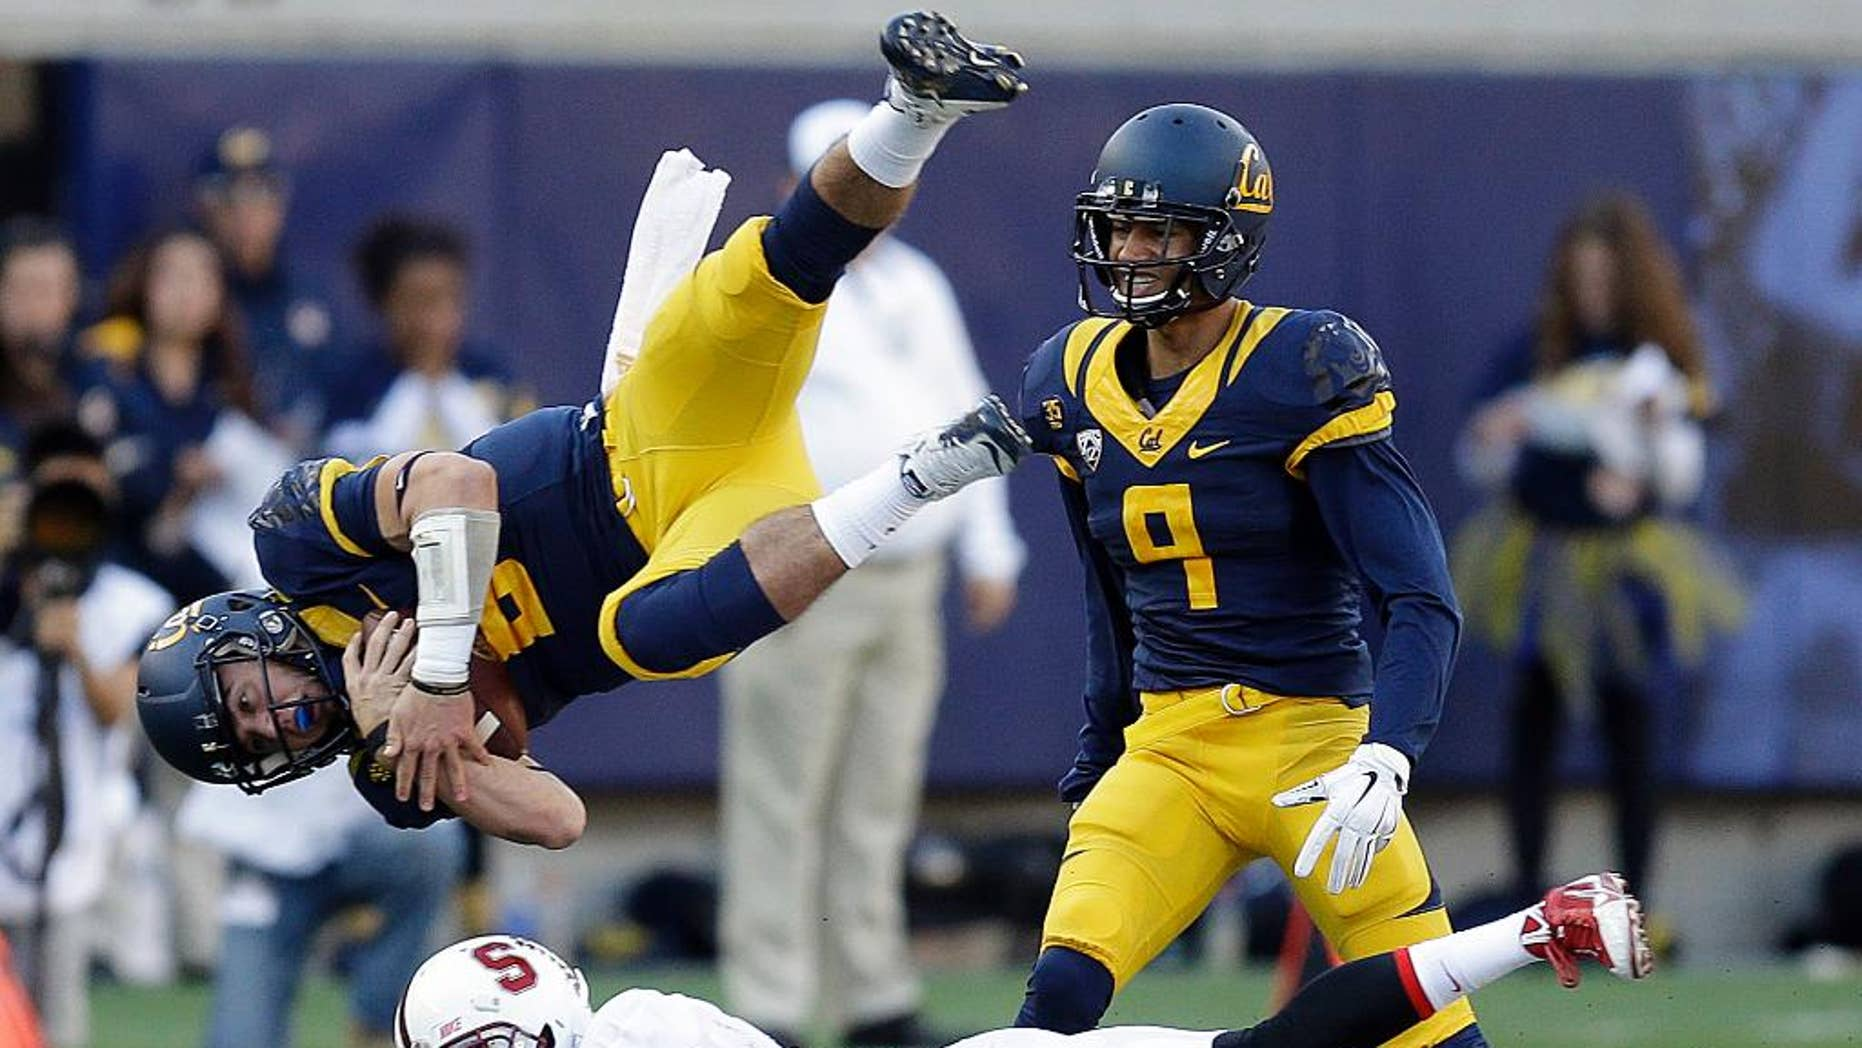 Stanford's Ronnie Harris (21) upends California quarterback Luke Rubenzer (8) during the second half of an NCAA college football game Saturday, Nov. 22, 2014, in Berkeley, Calif. At right is California's Trevor Davis (9). (AP Photo/Ben Margot)